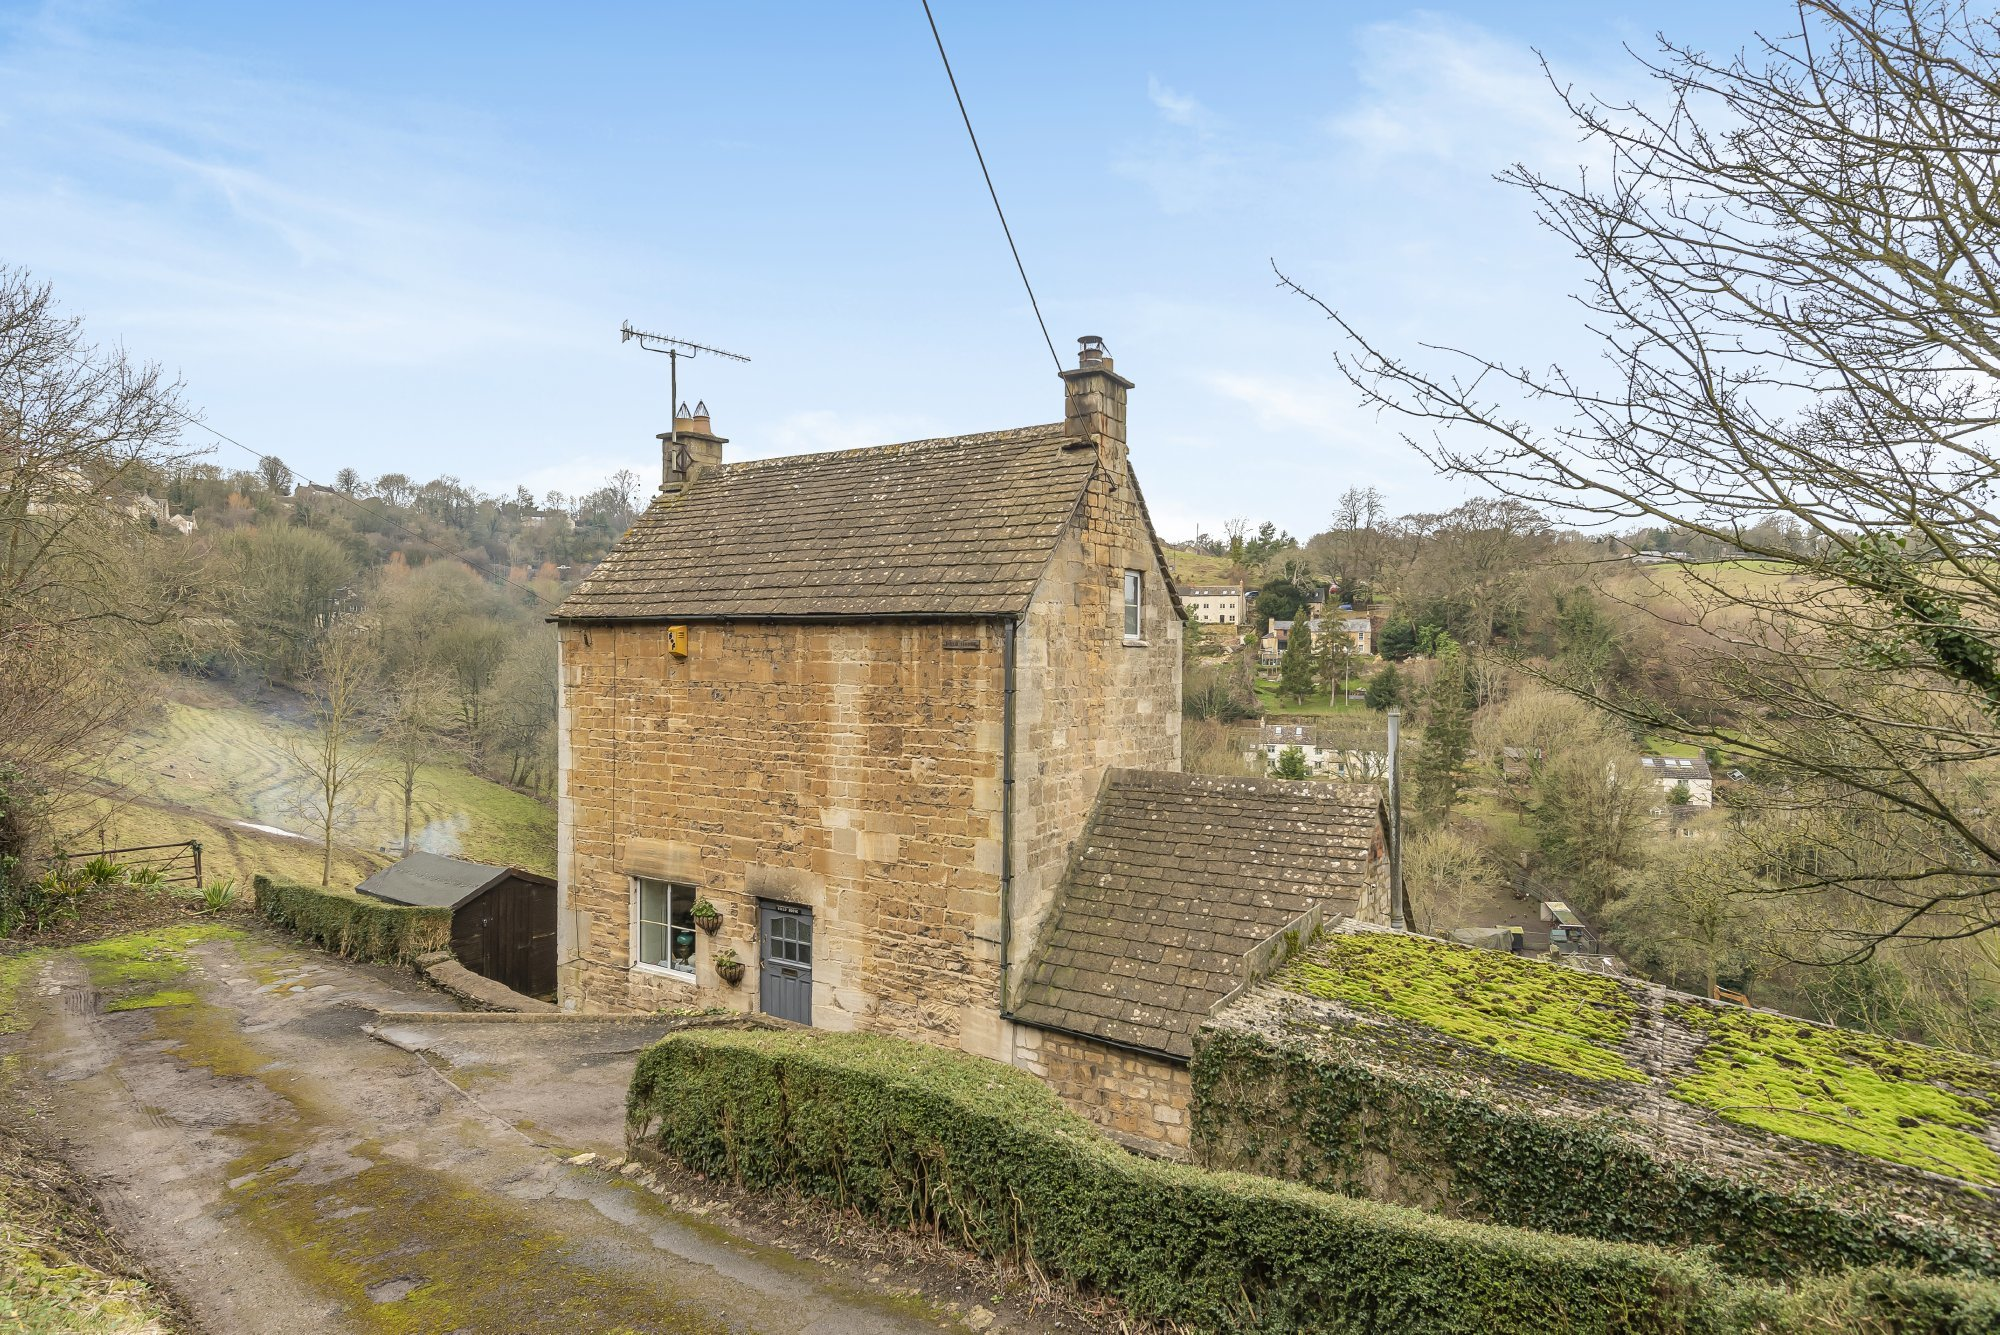 Property of the day is this beautiful Cotswold stone cottage for £460K in Brimscombe